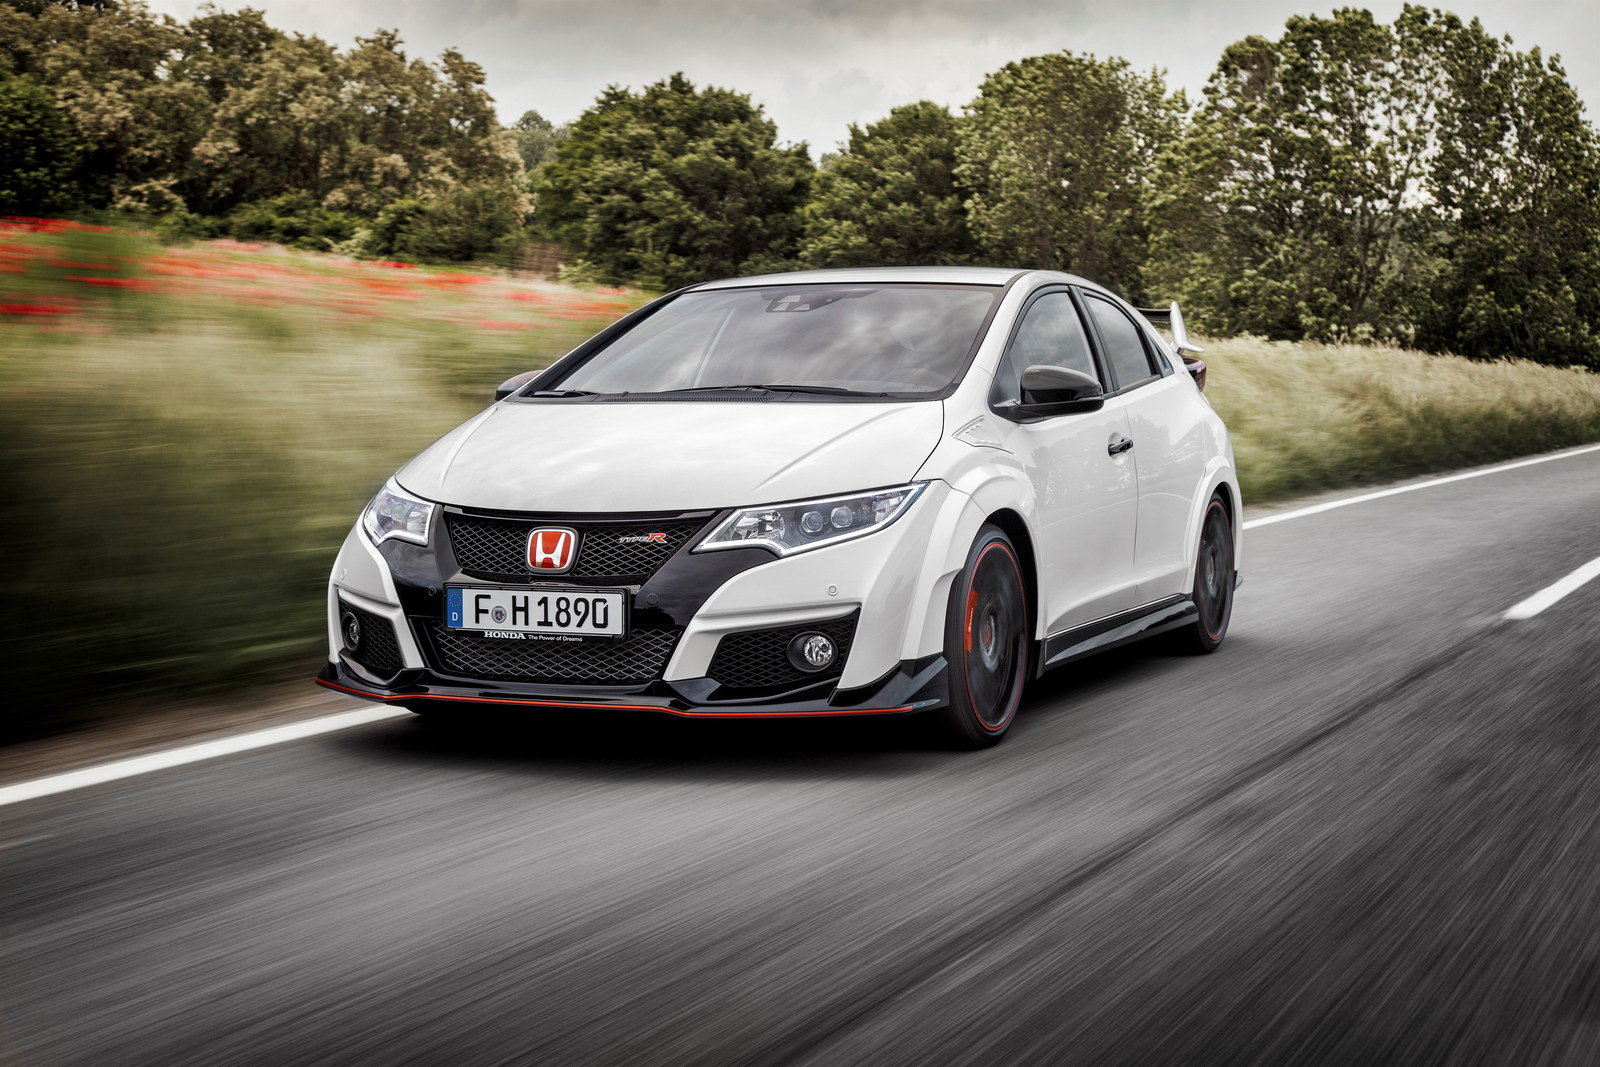 2016 honda civic type r picture 632263 car review top speed. Black Bedroom Furniture Sets. Home Design Ideas